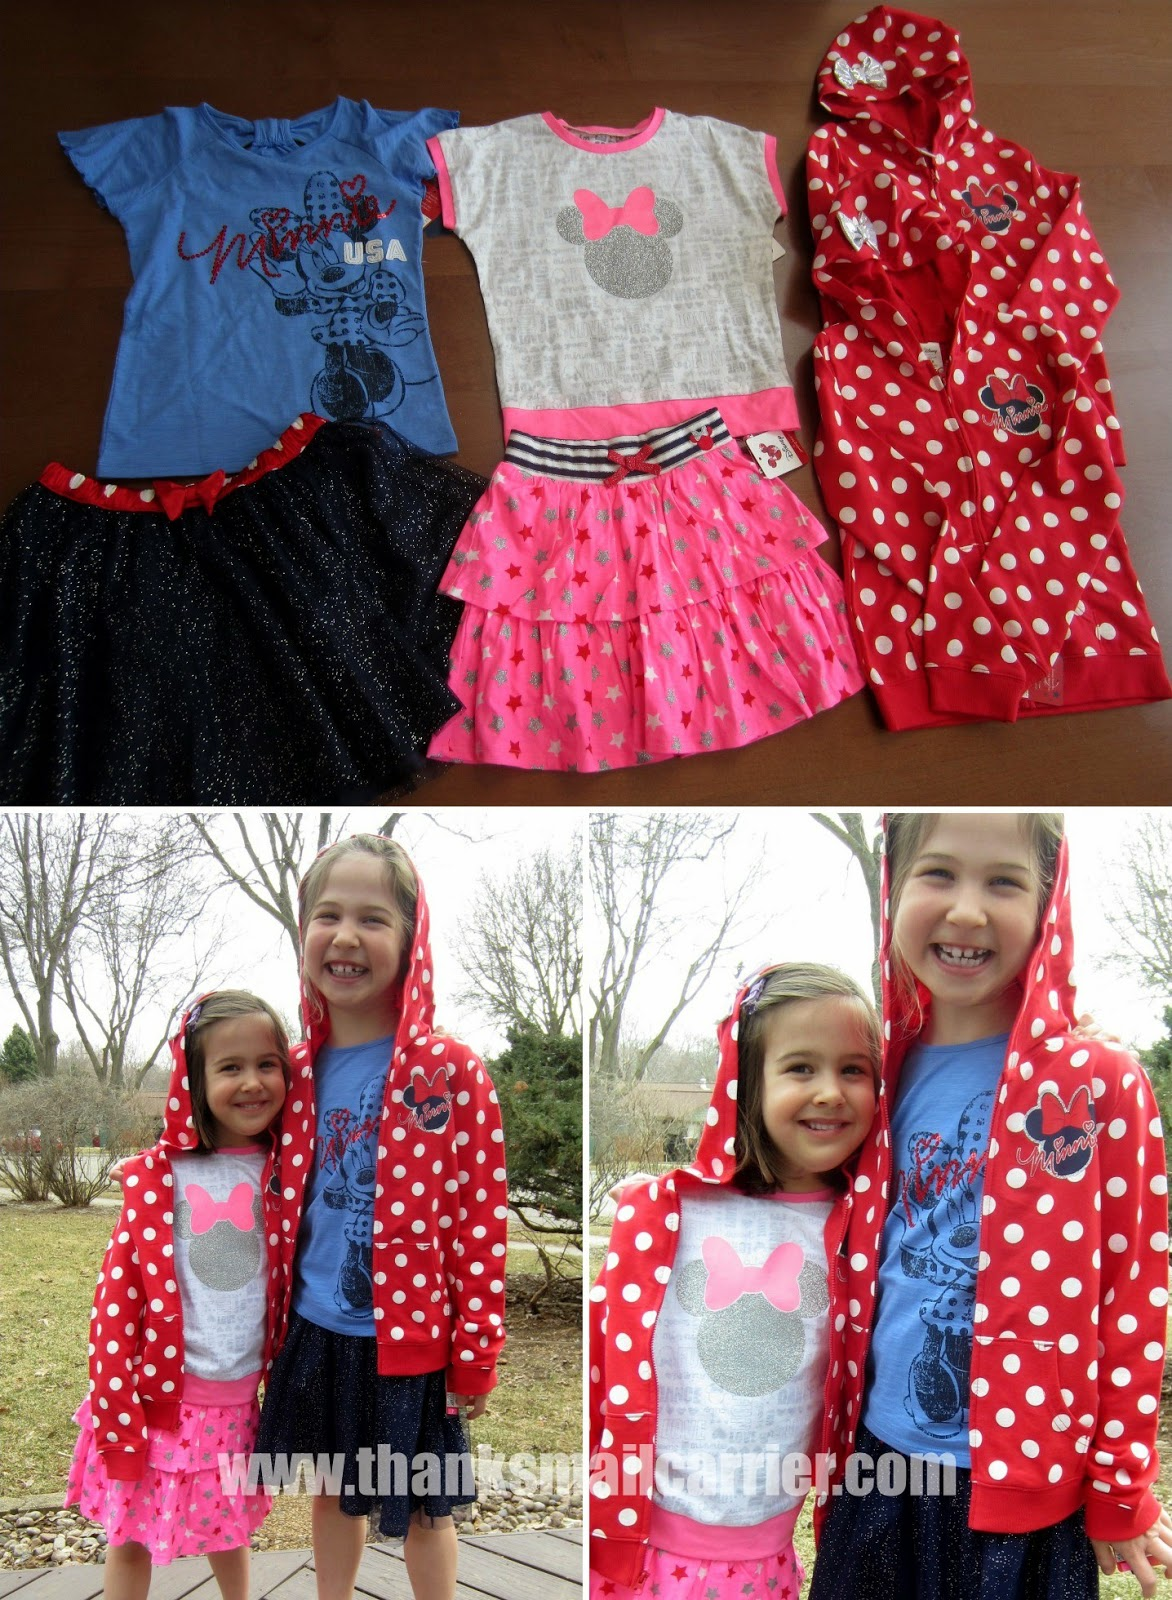 Magic at Play Disney kids clothing